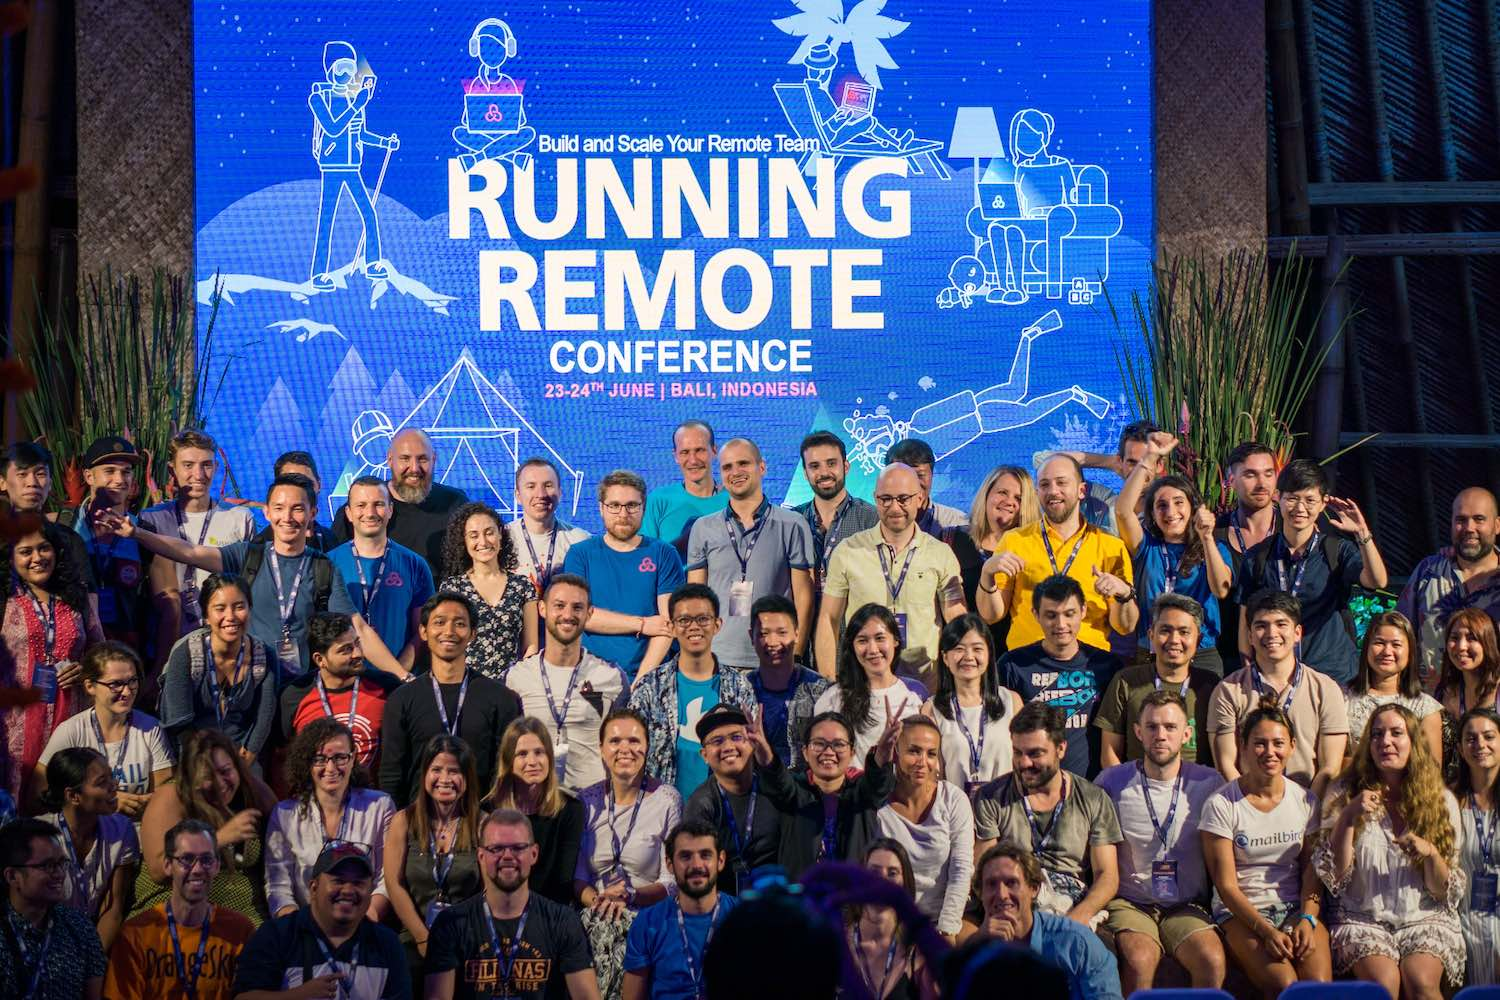 event marketing for running remote